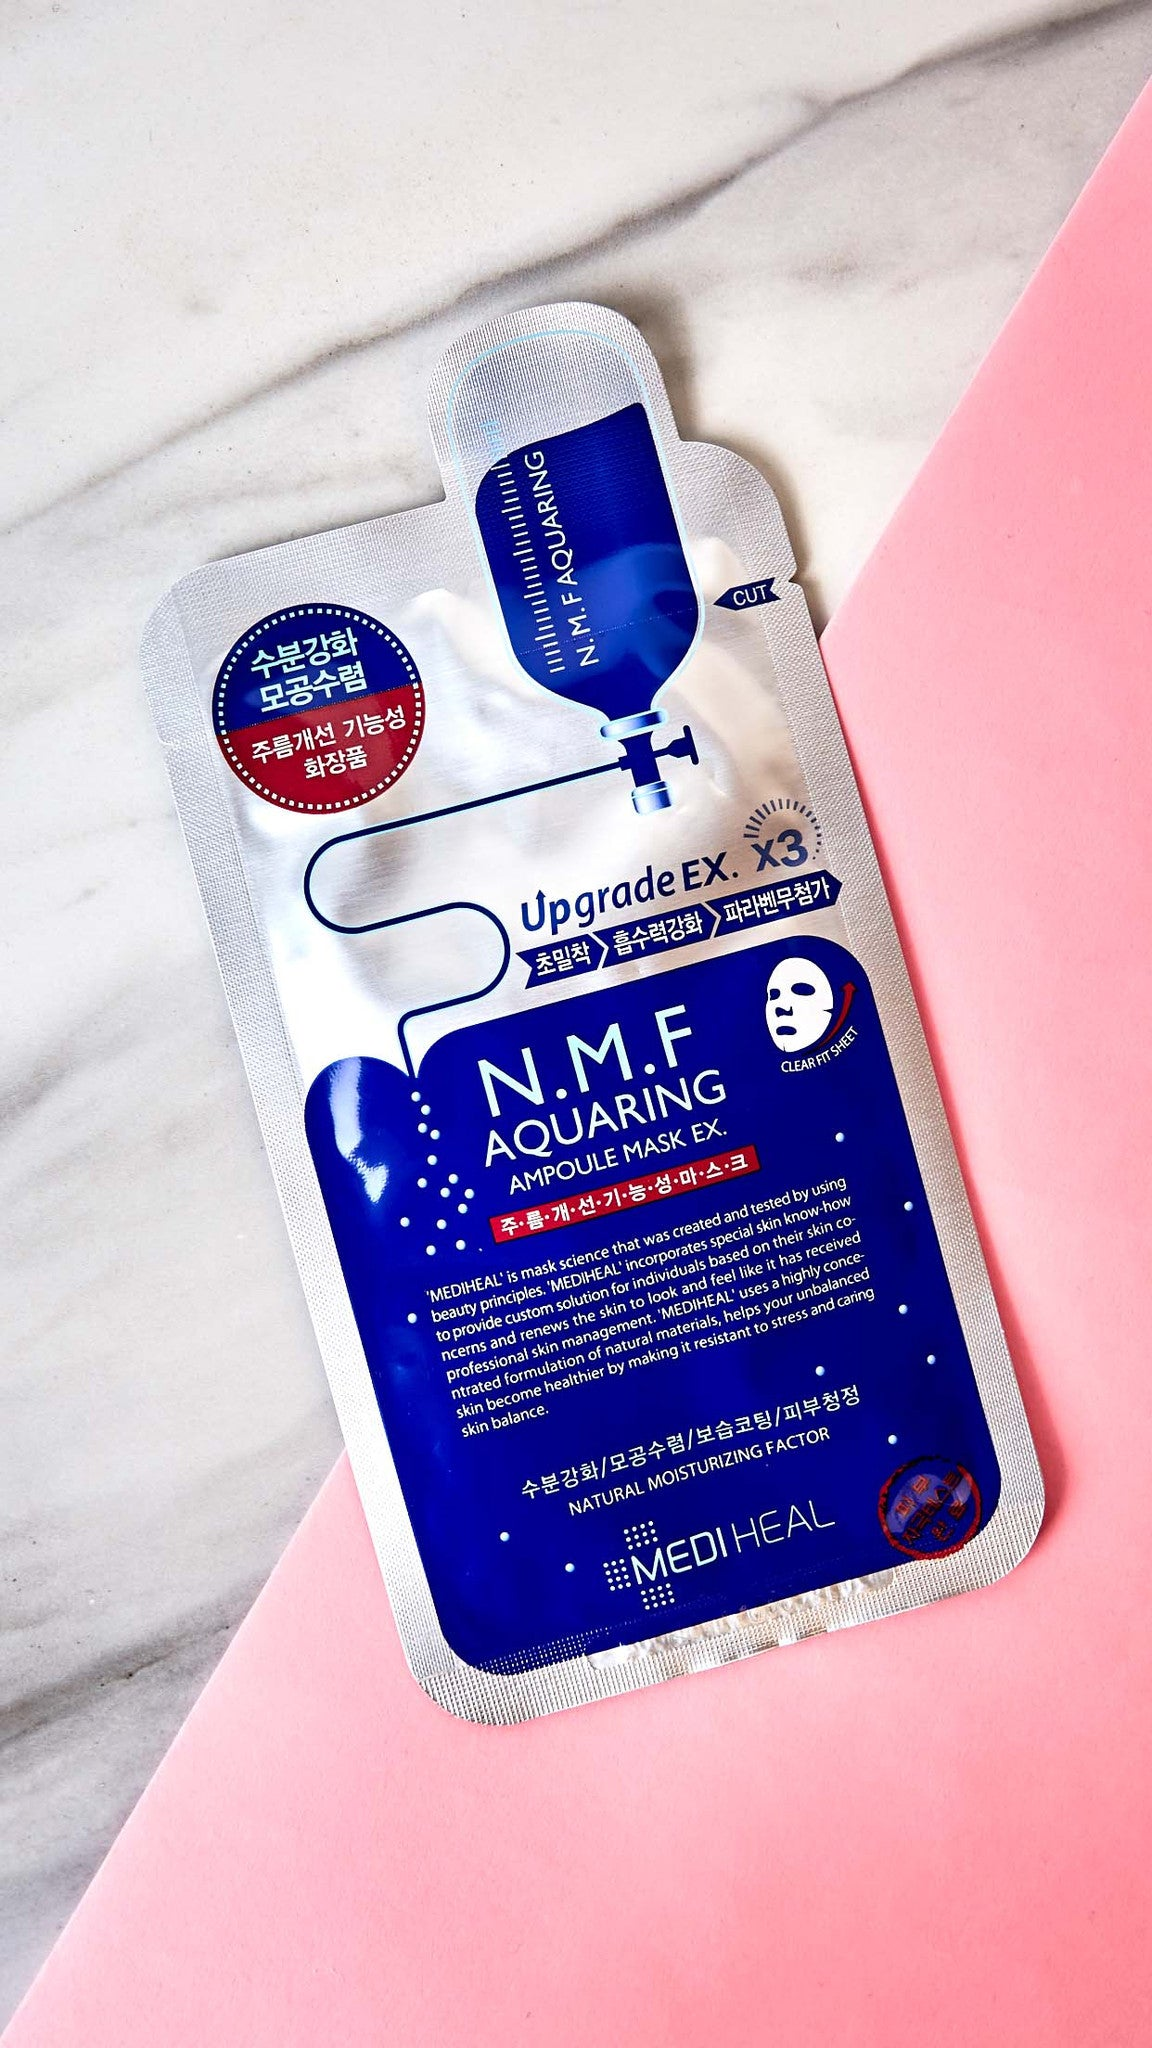 NMF Aquaring Ampoule Mask EX